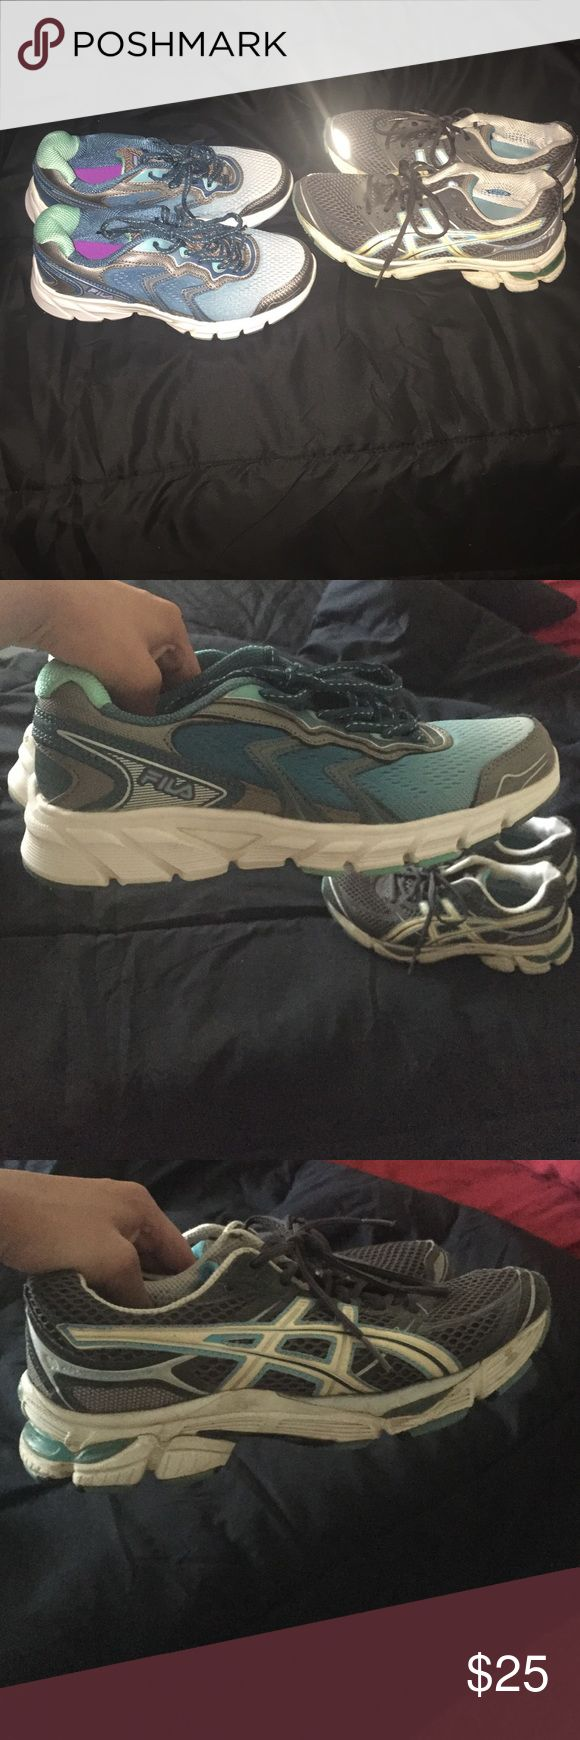 Fila running shoes and IGS running shoes FILA running shoes are still new worn twice size 7. IGS Running shoes are in decent condition really comfy! Size 8... FILA $25 or $10 for IGS. Offer price if both wanted Shoes Sneakers